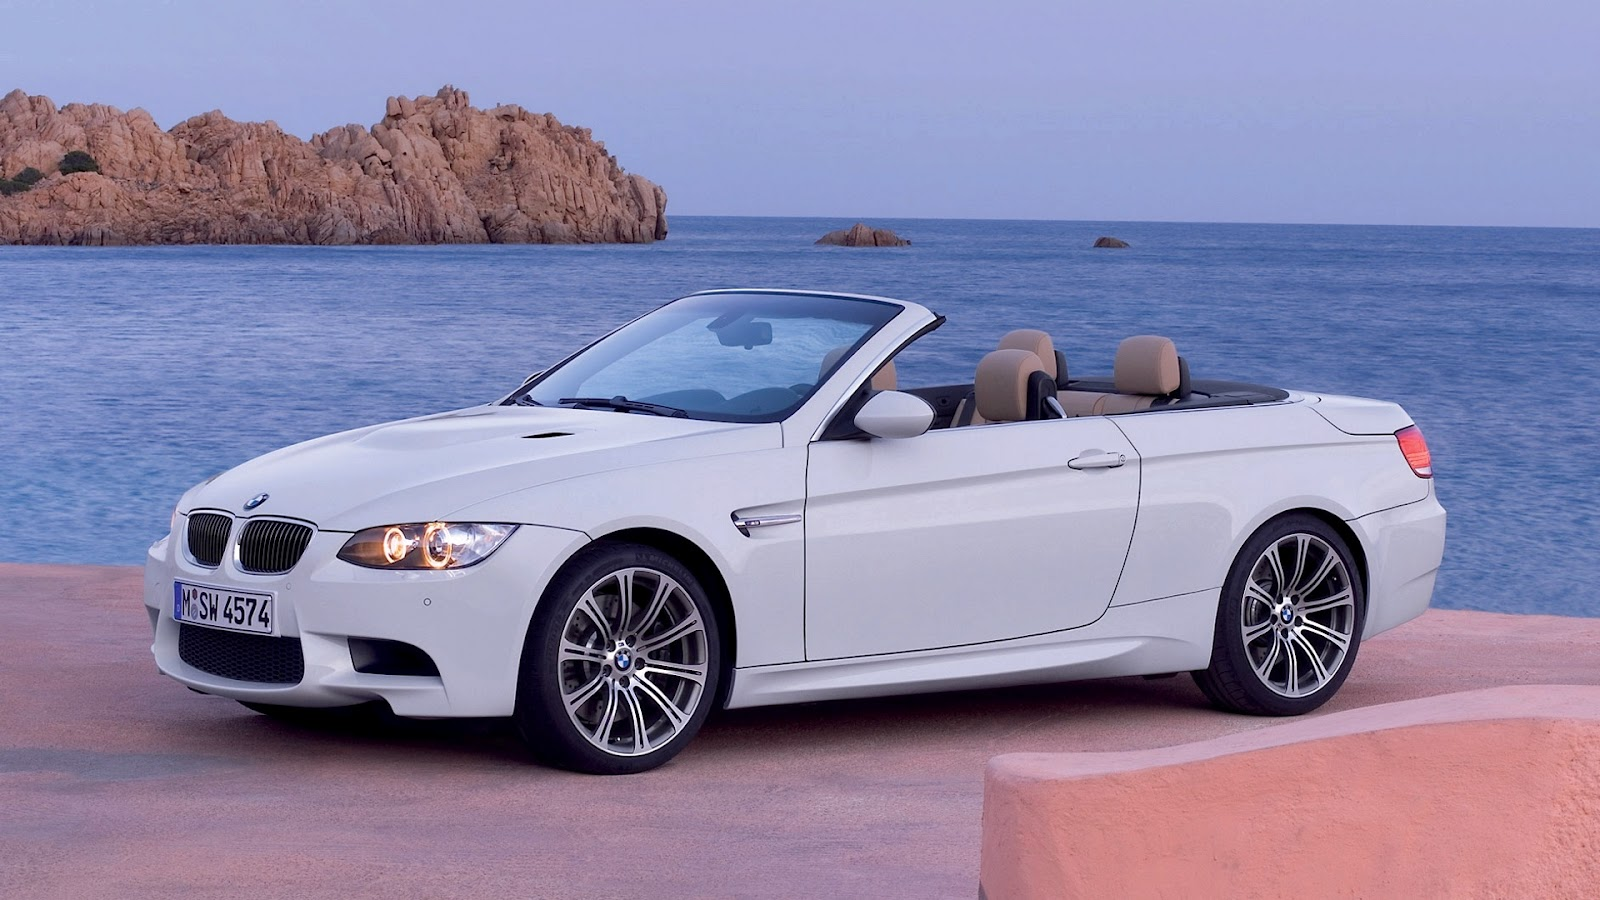 ... Wallpapers Desktop Bmw Car Hd With Hiquality Full Pics Of Mobile Phones  Cars .